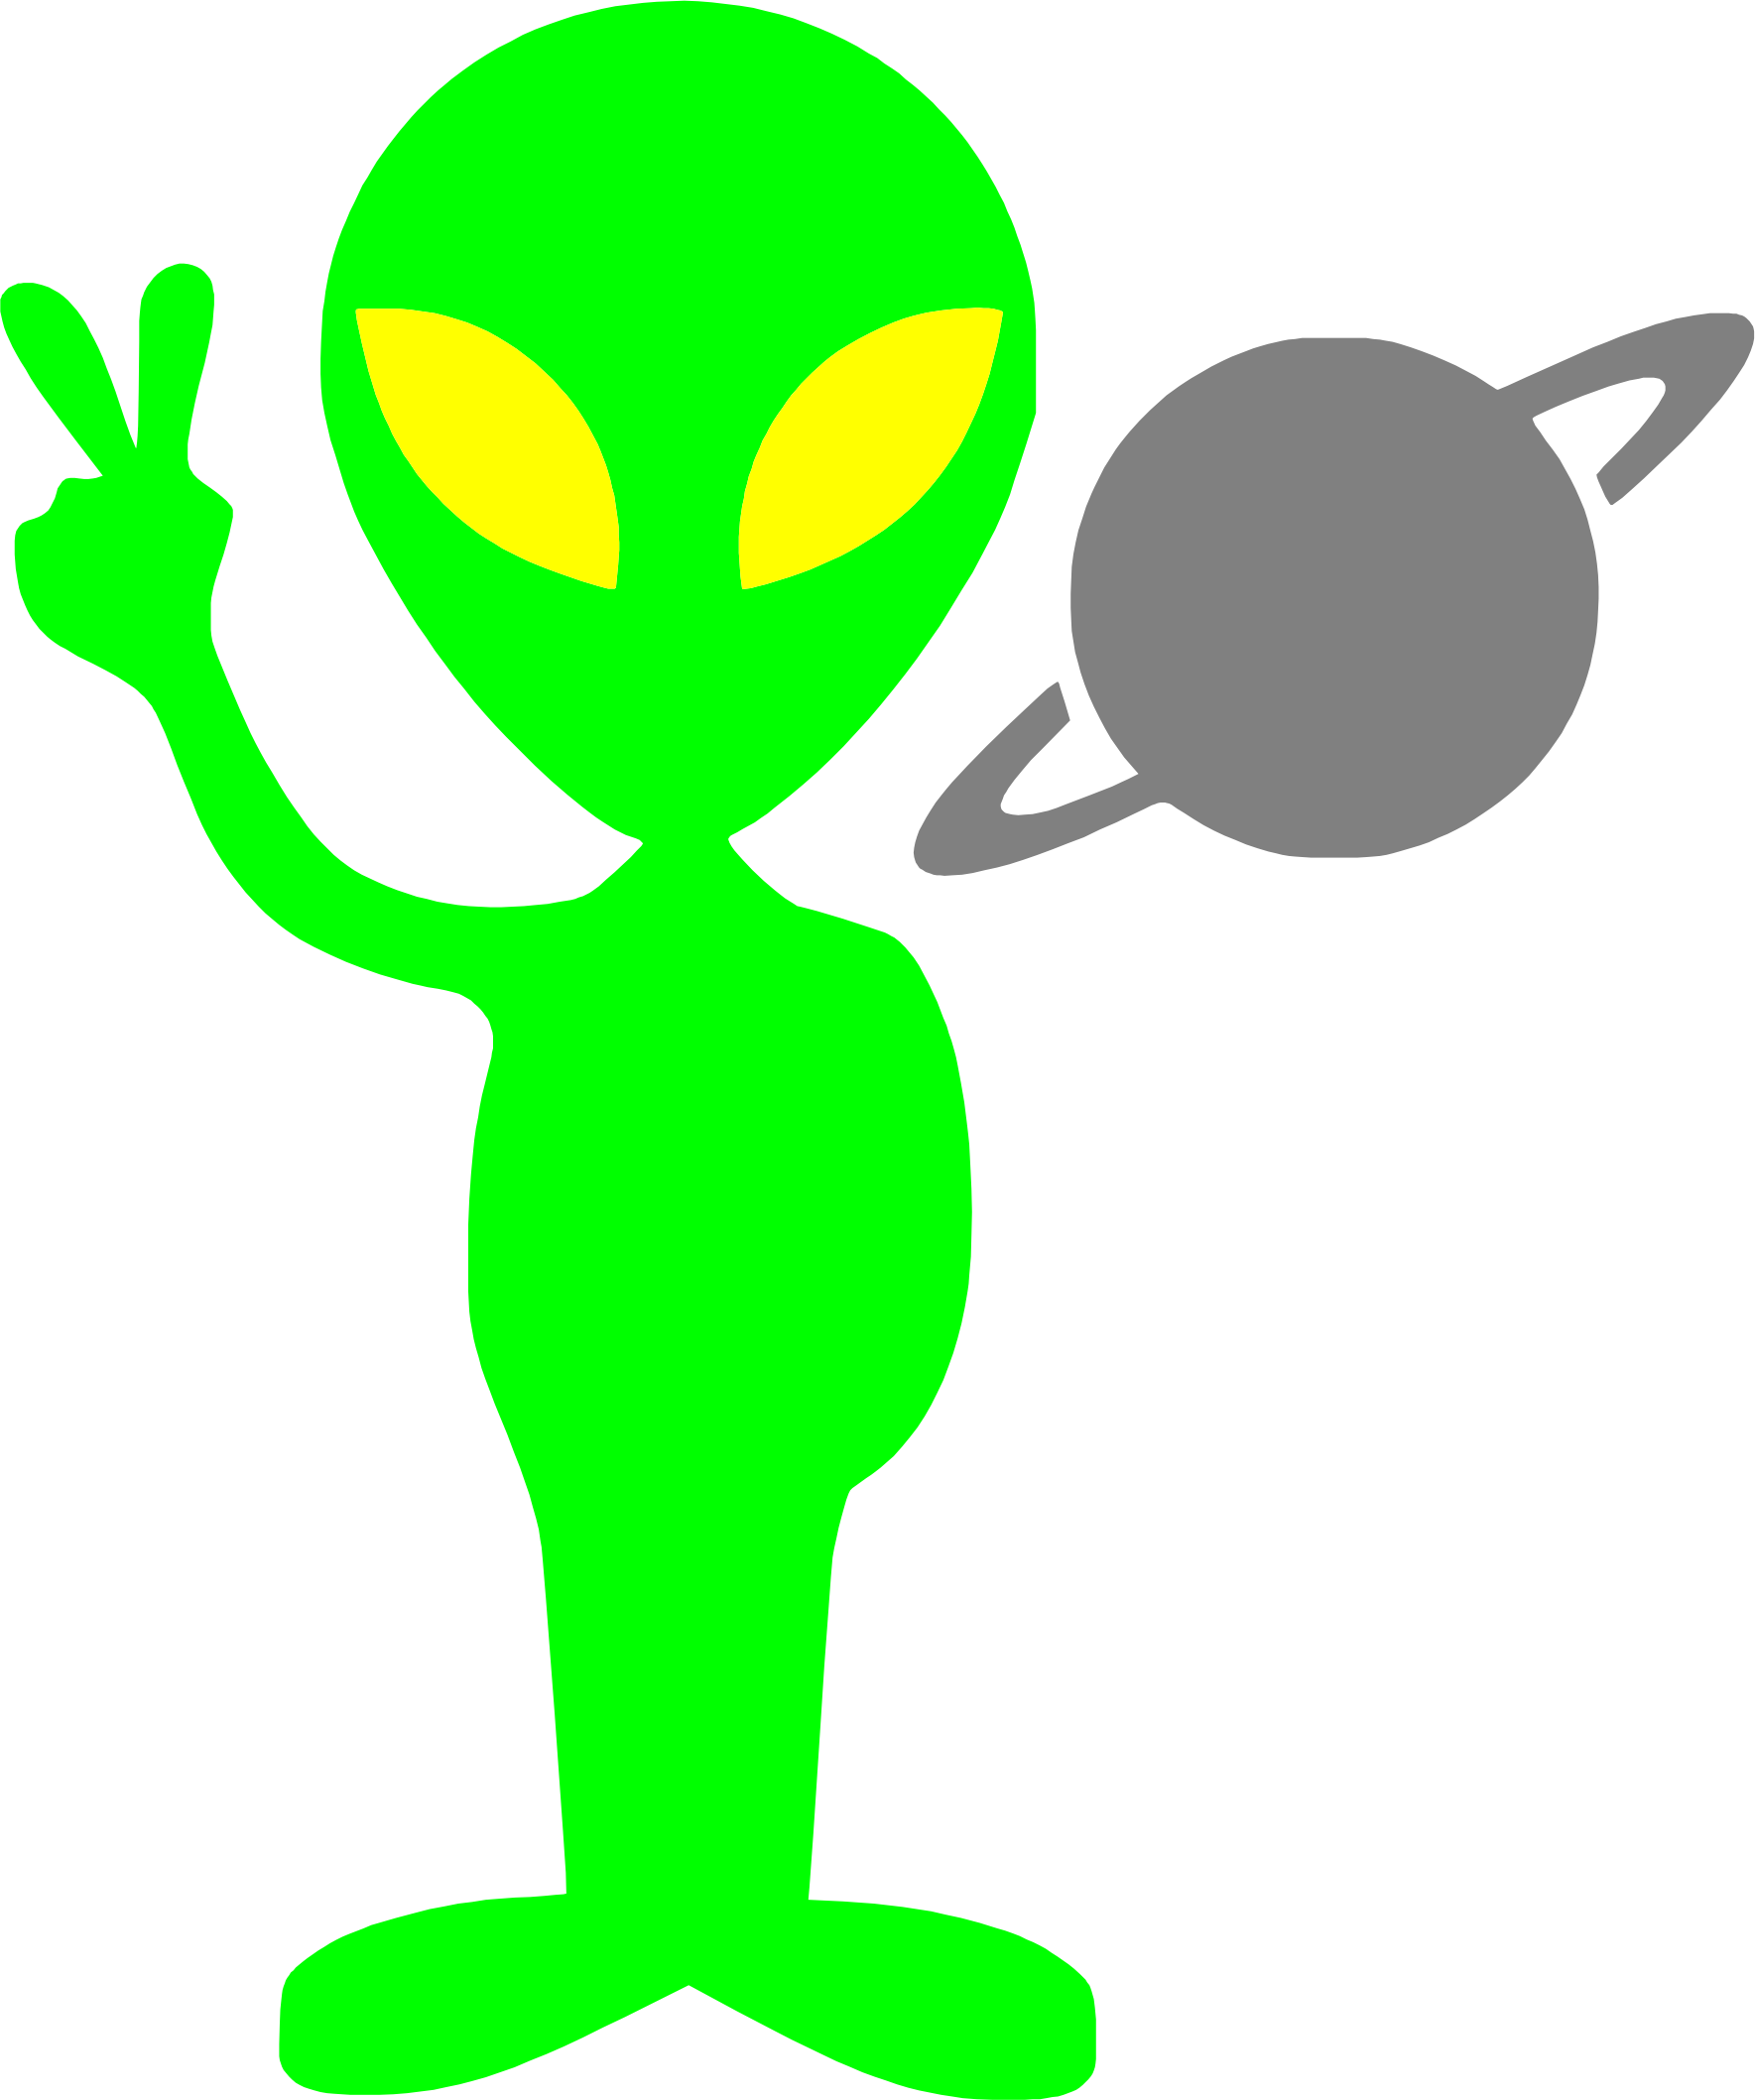 Alien cartoon png. Tobyaxis the icons free